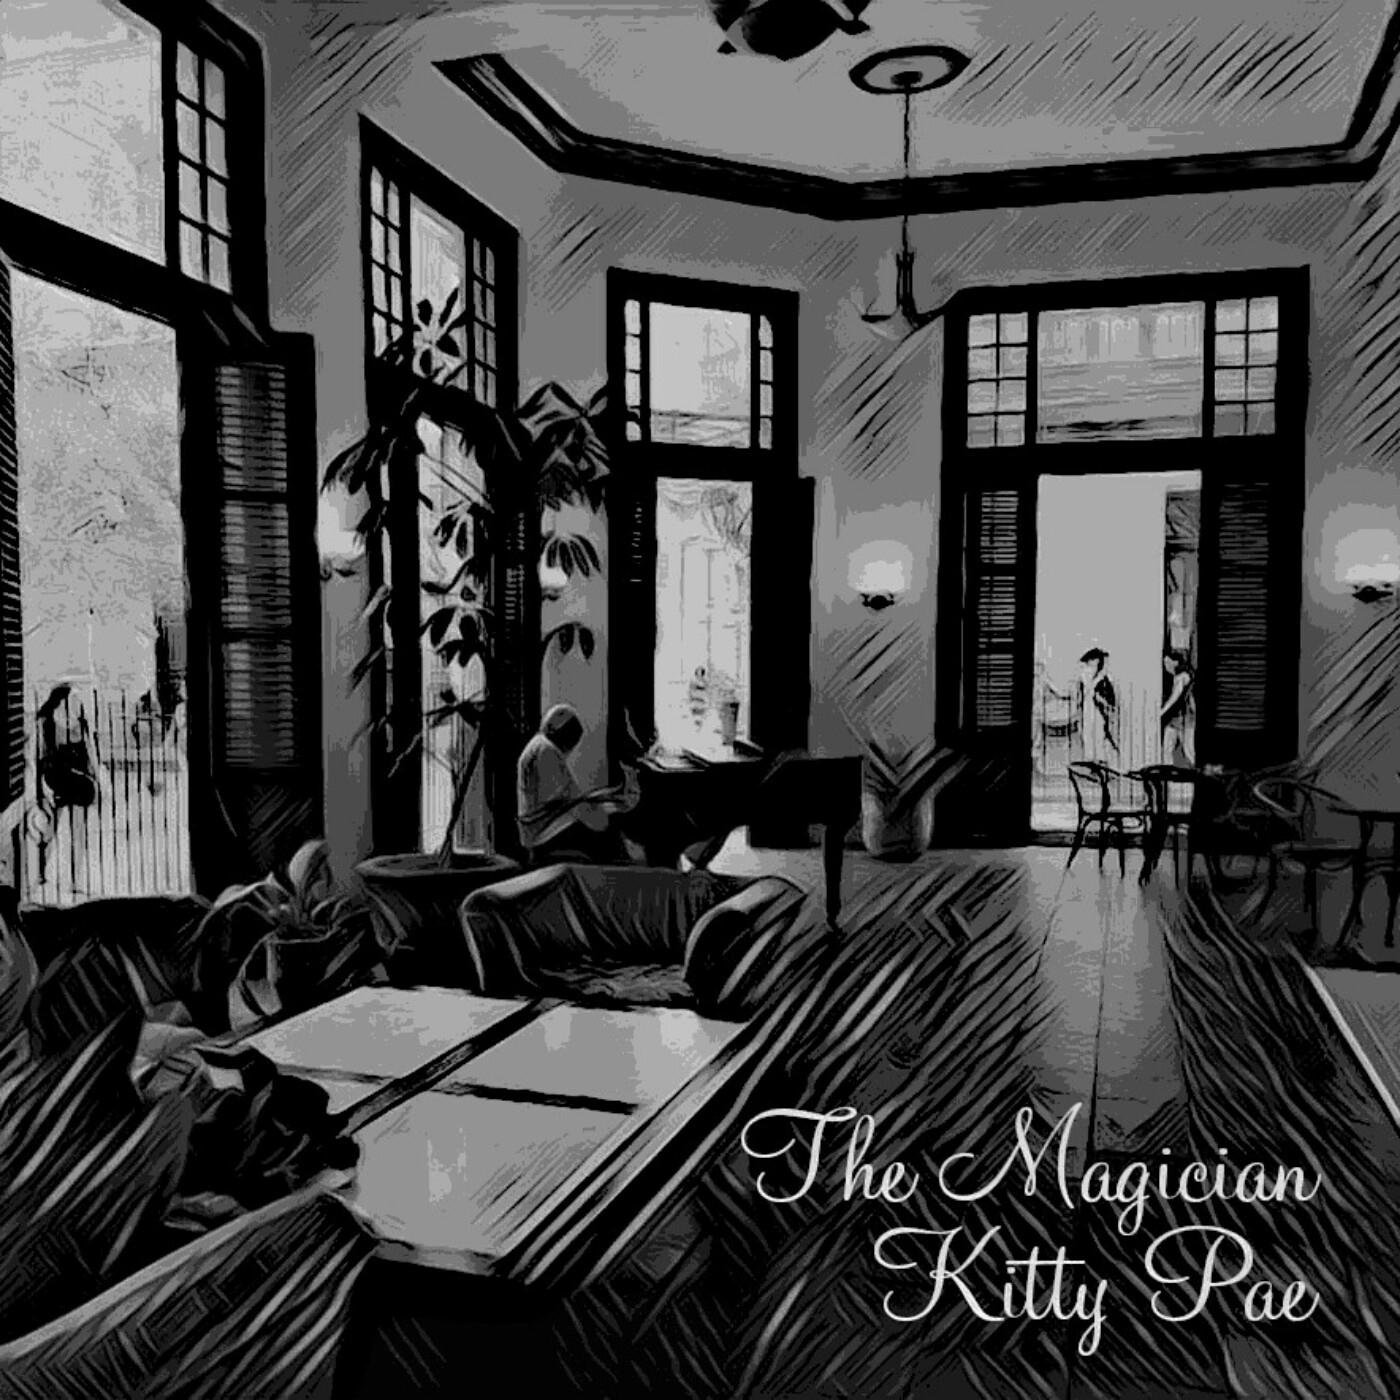 The Magician - Kitty Pae